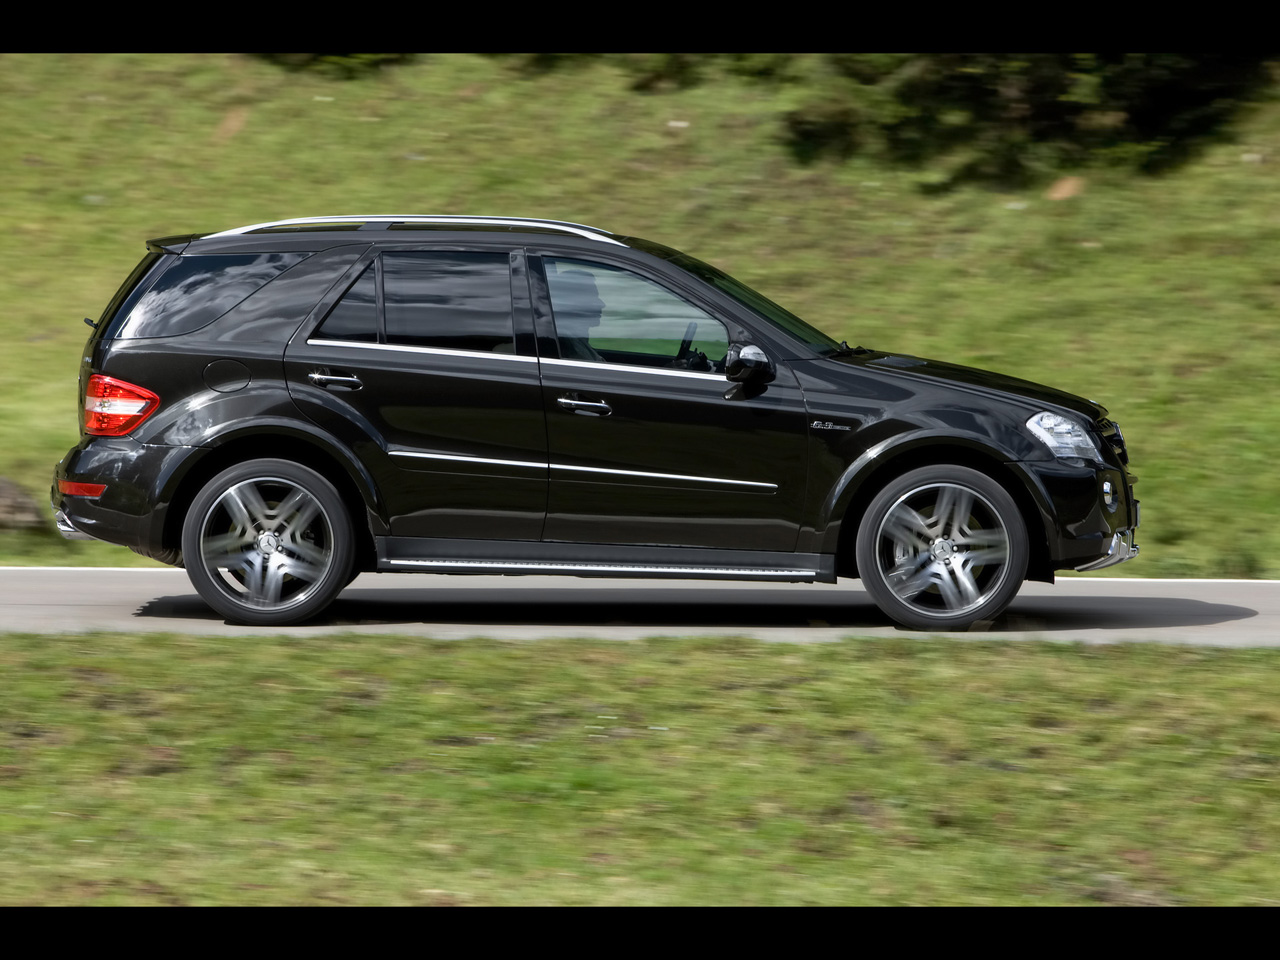 Mercedes benz ml 63 amg technical details history photos for Mercedes benz upgrades